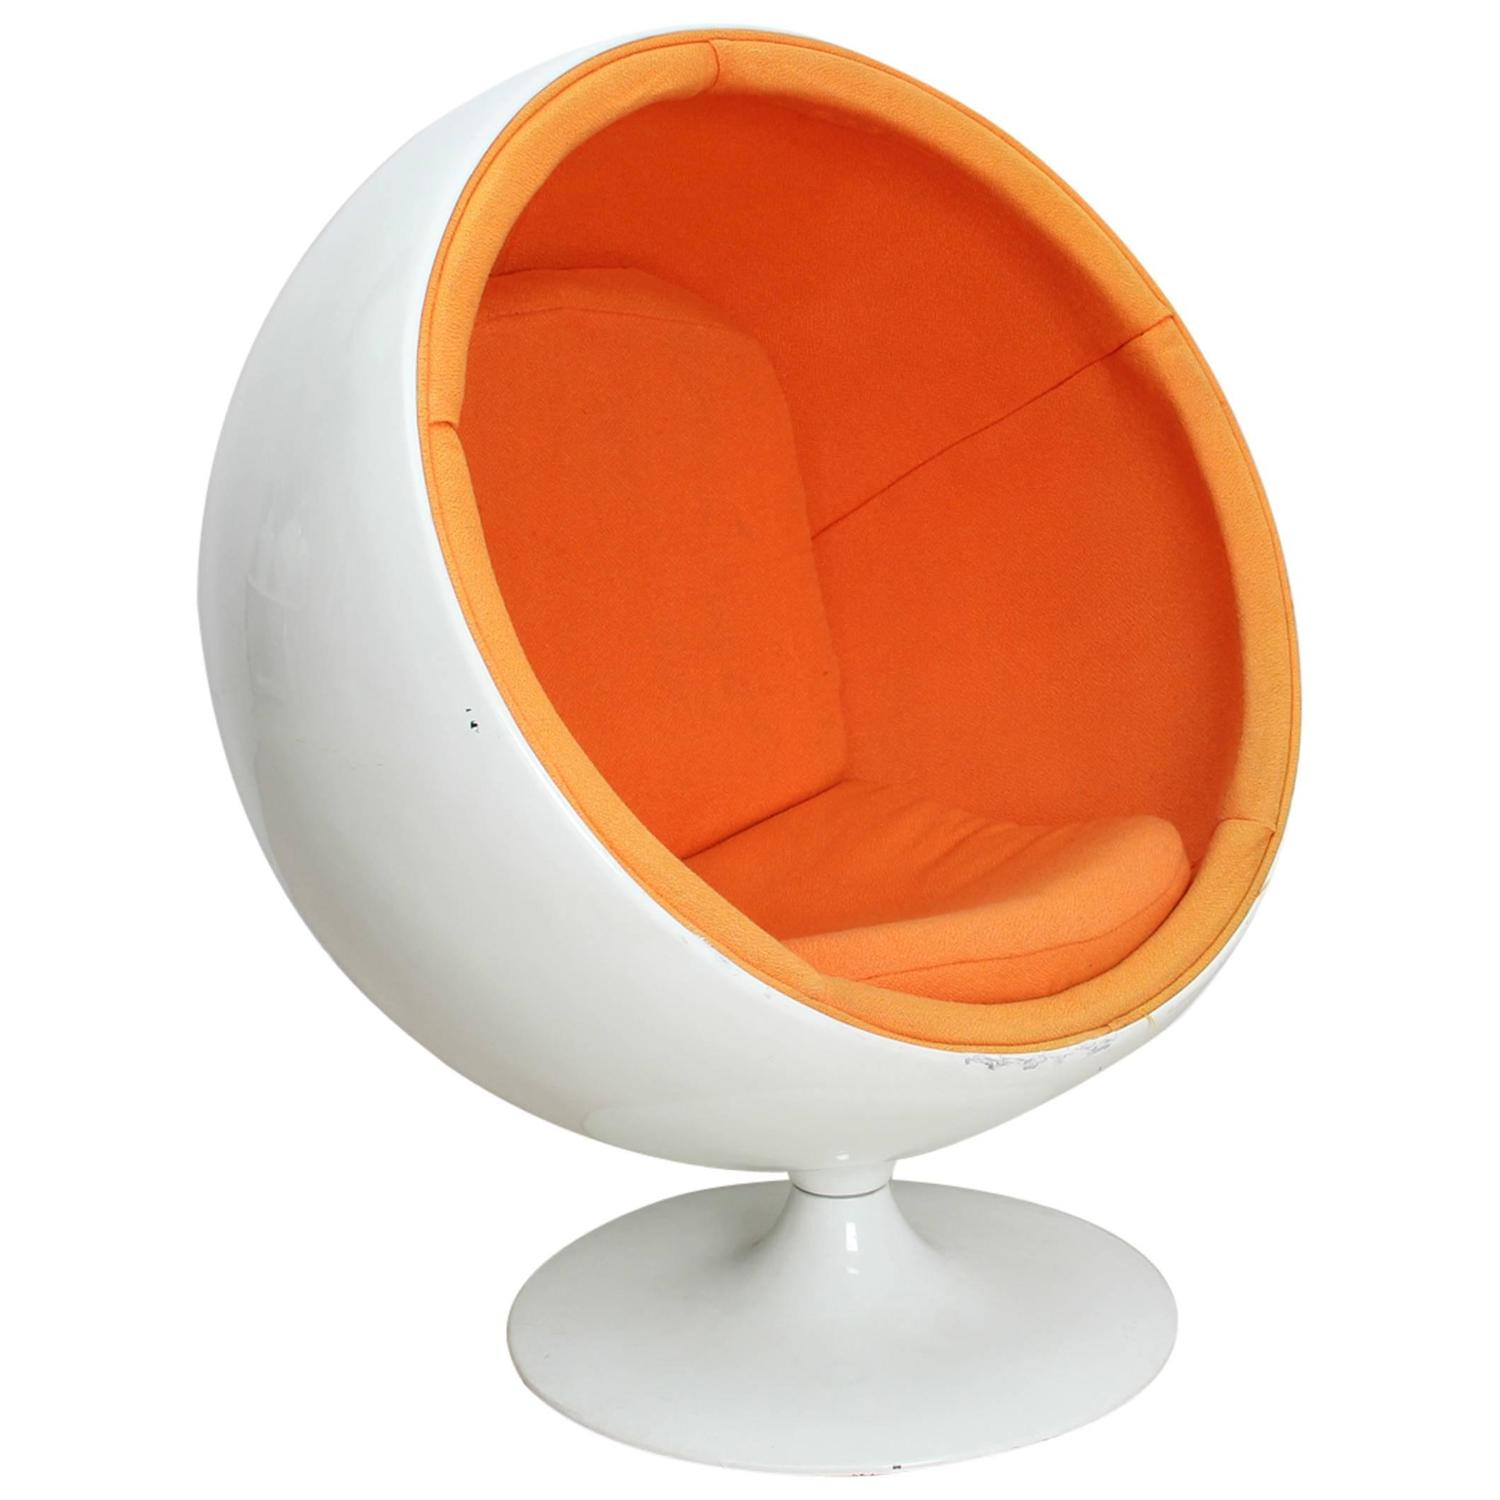 Bubble chair eero aarnio - Ball Chair For Kids By Eero Aarnio Ed Adelta 1963